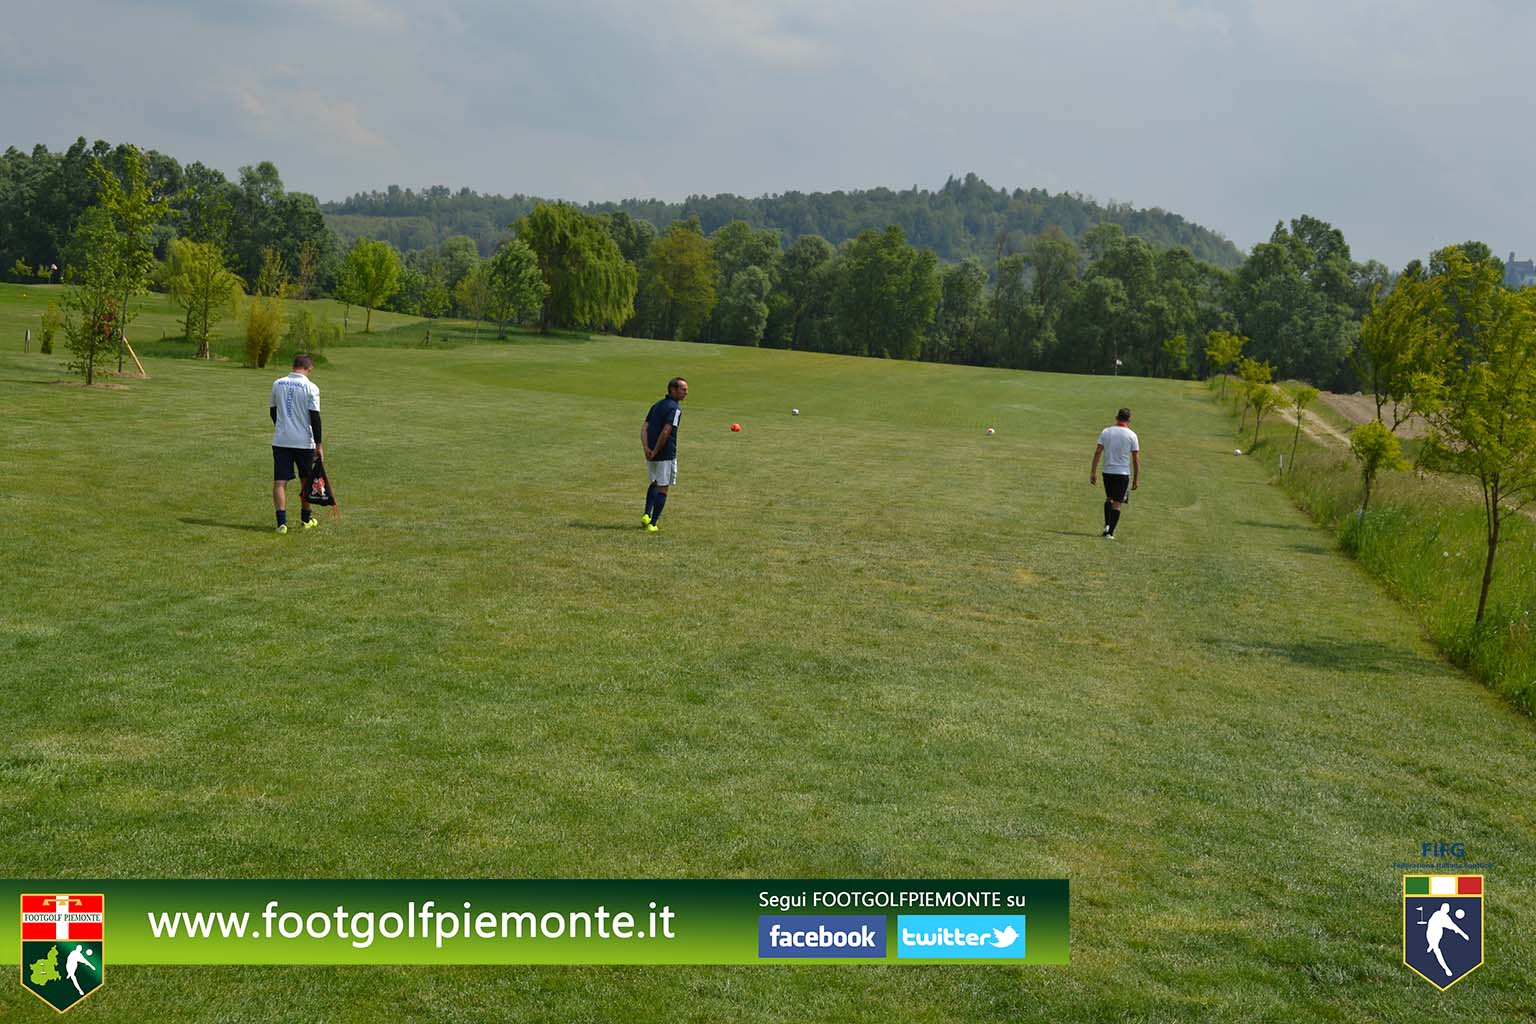 FOTO 9 Regions' Cup Footgolf Piemonte 2016 Golf Città di Asti (At) 30apr16-95